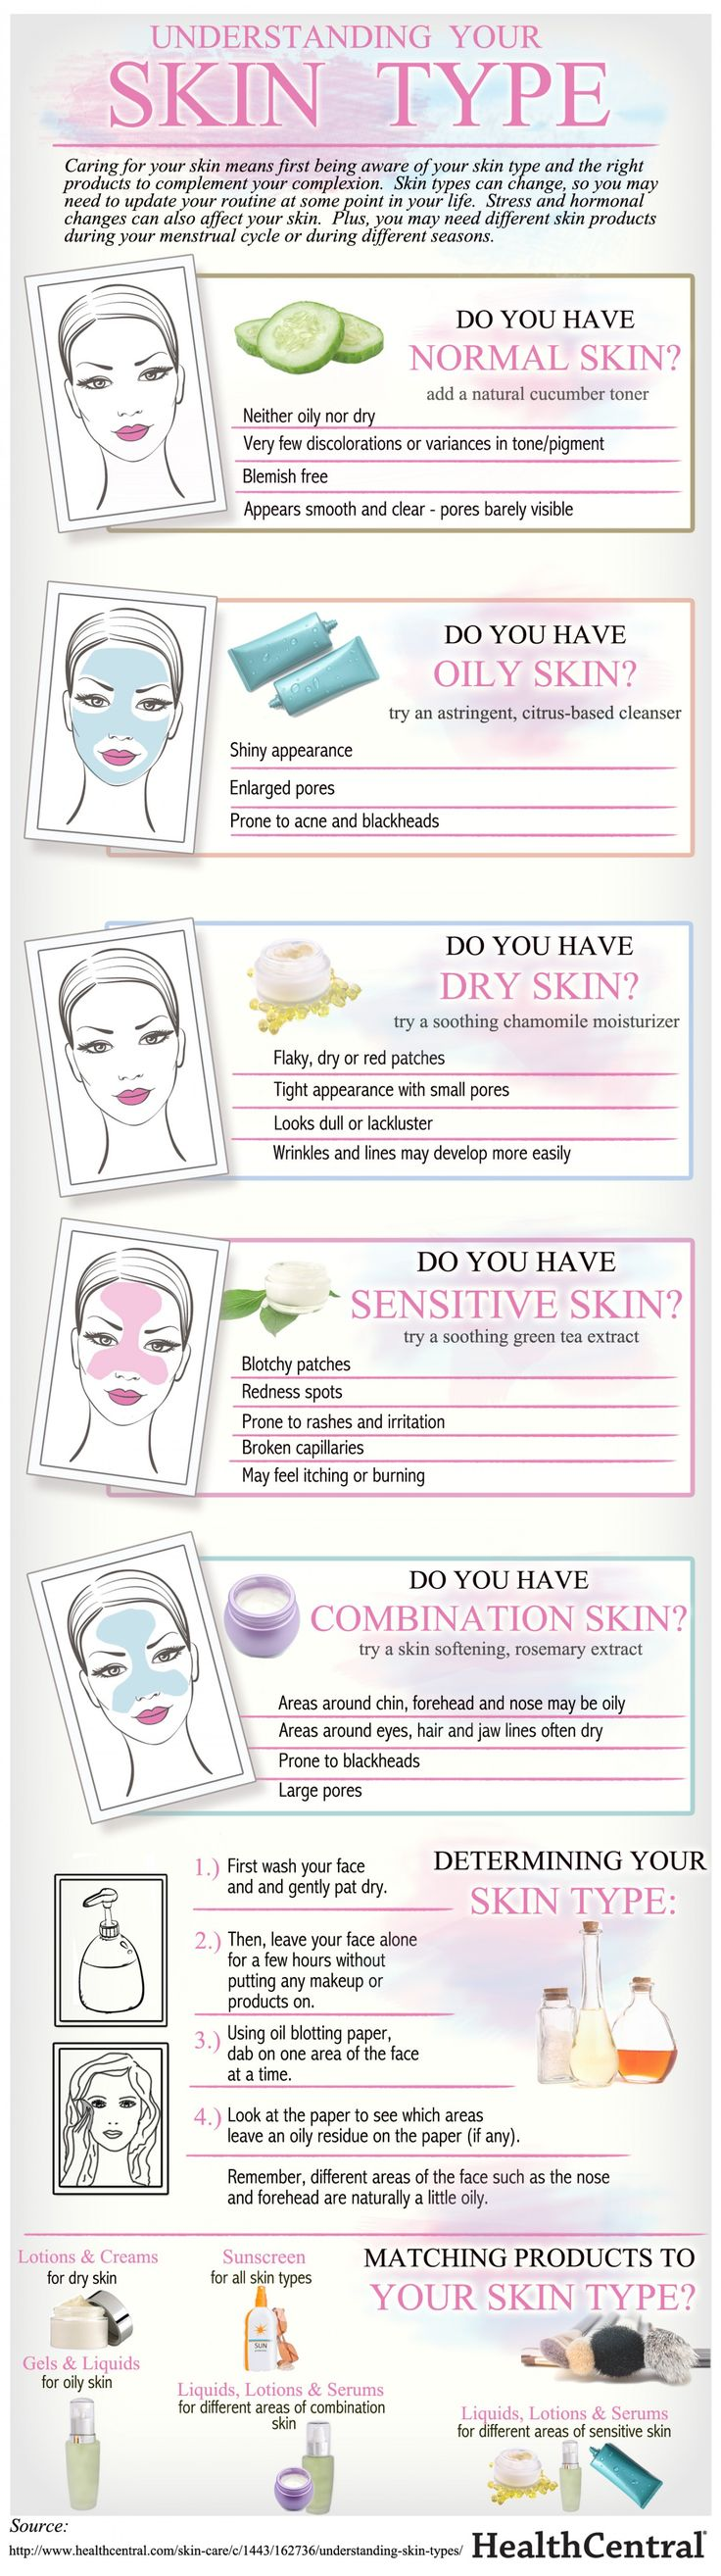 Caring for your skin means first being aware of your skin type and the right products to complement your complexion.